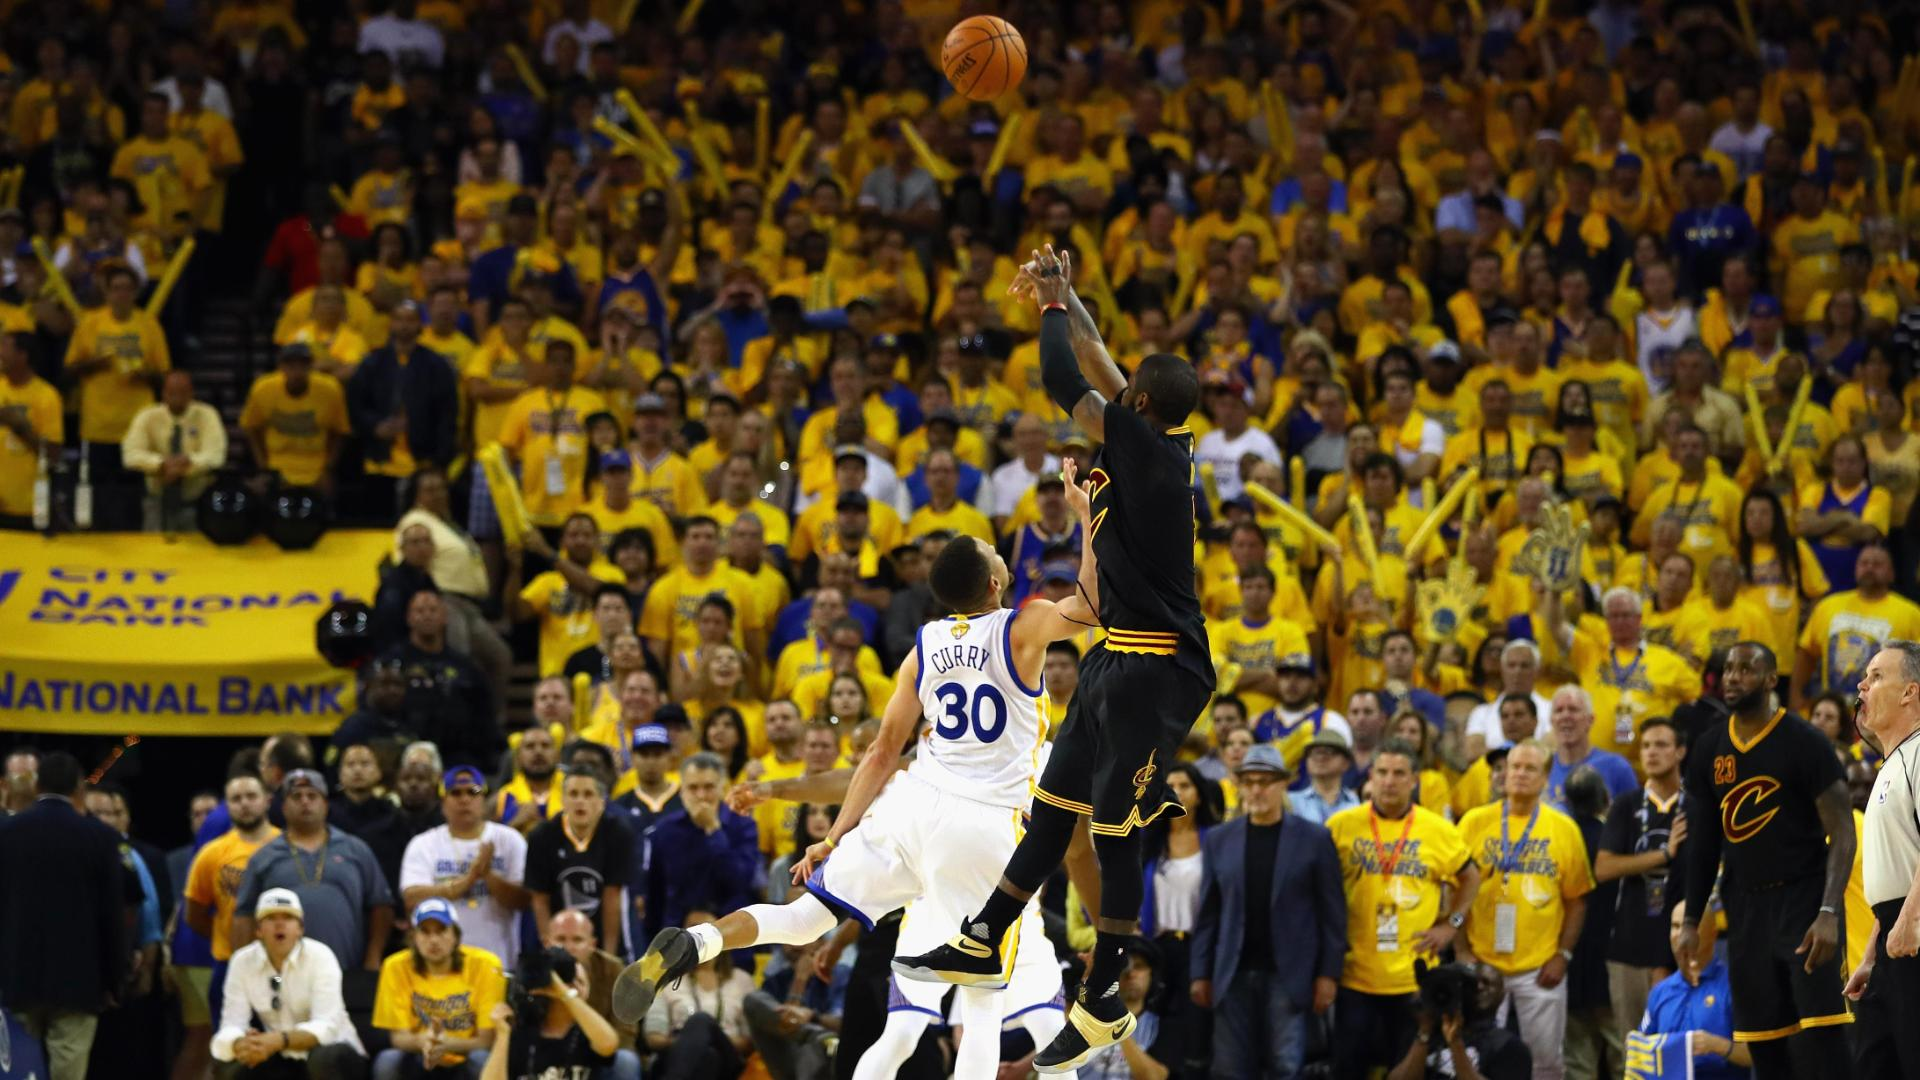 Kyrie drains game-winning 3-pointer in Curry's face